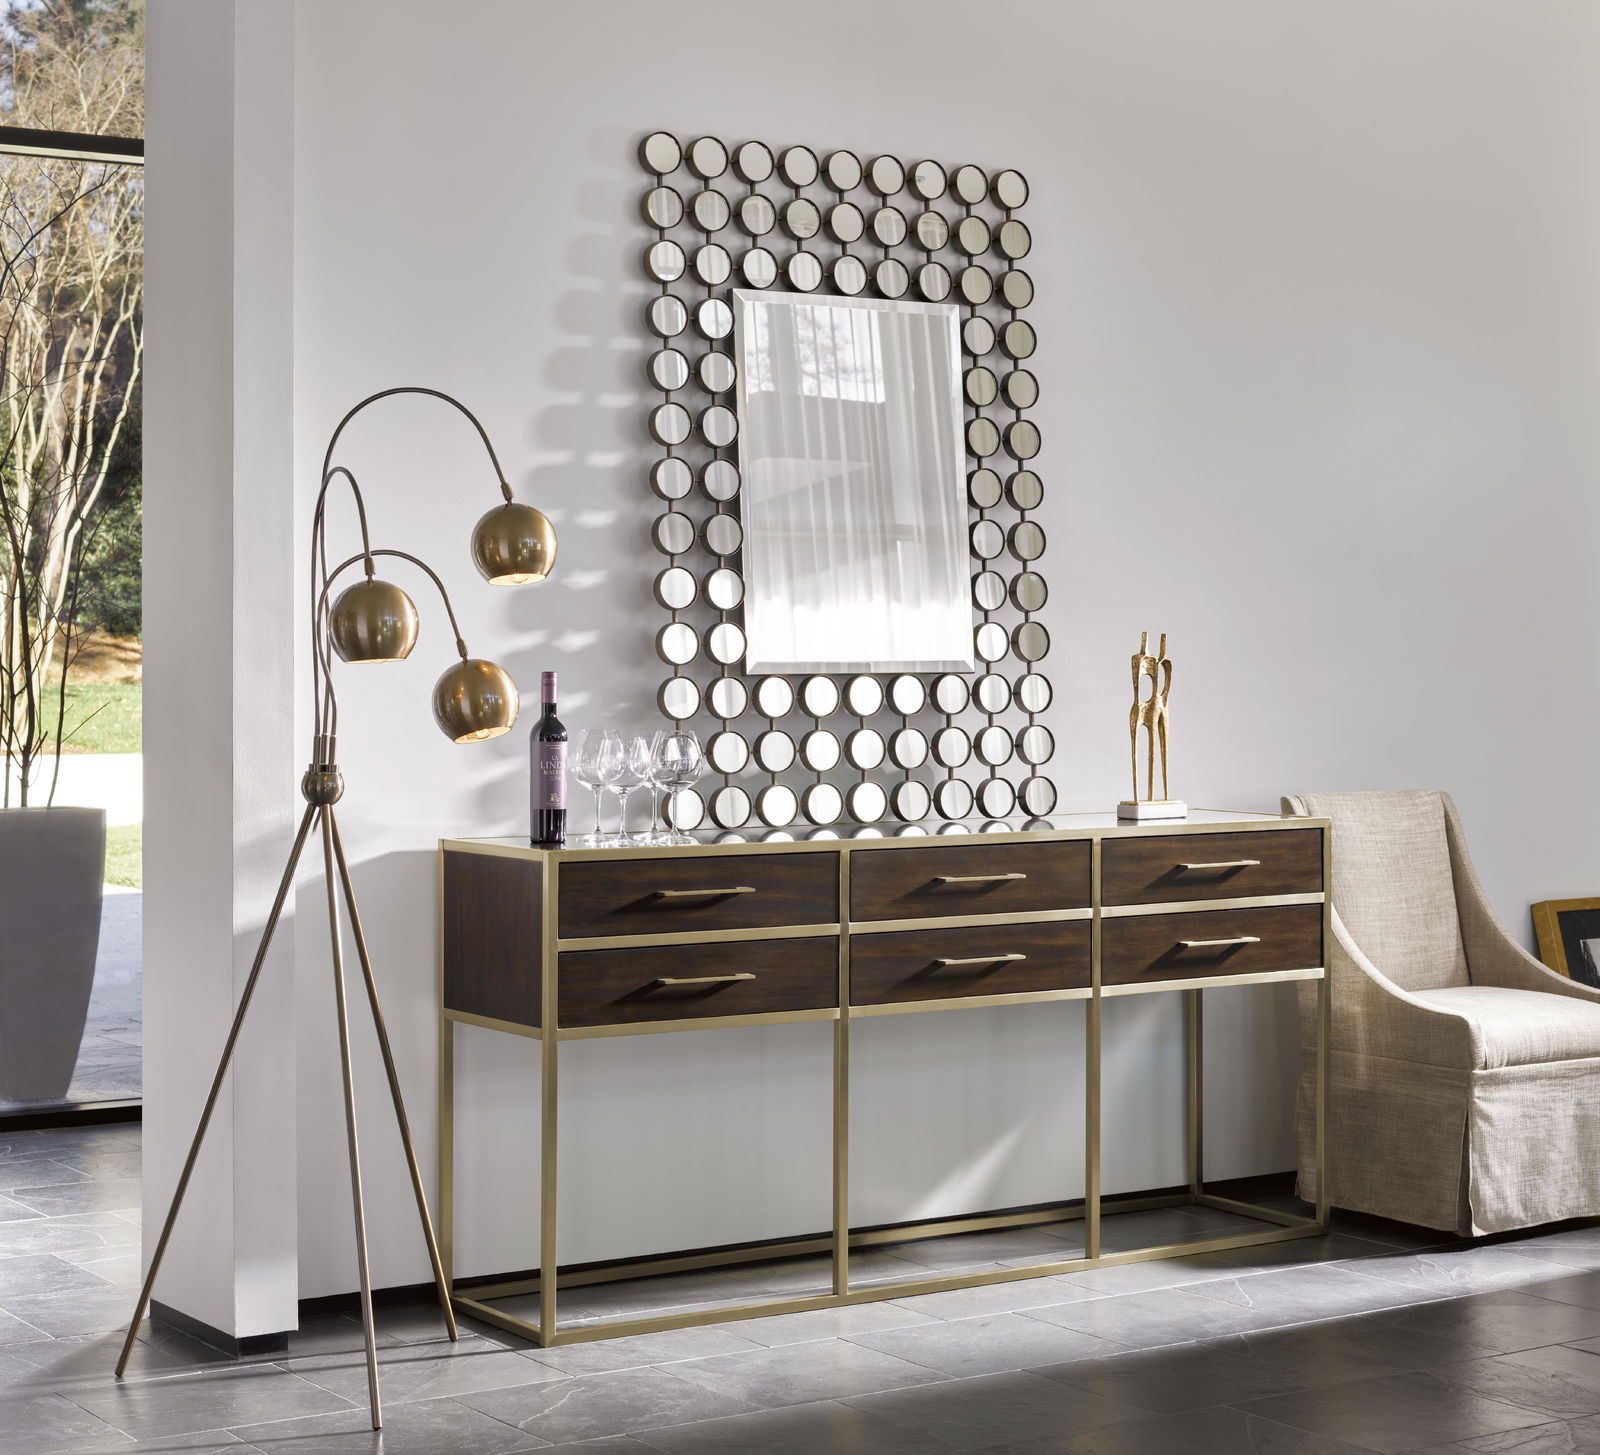 Brown console table with a mirror on top of it